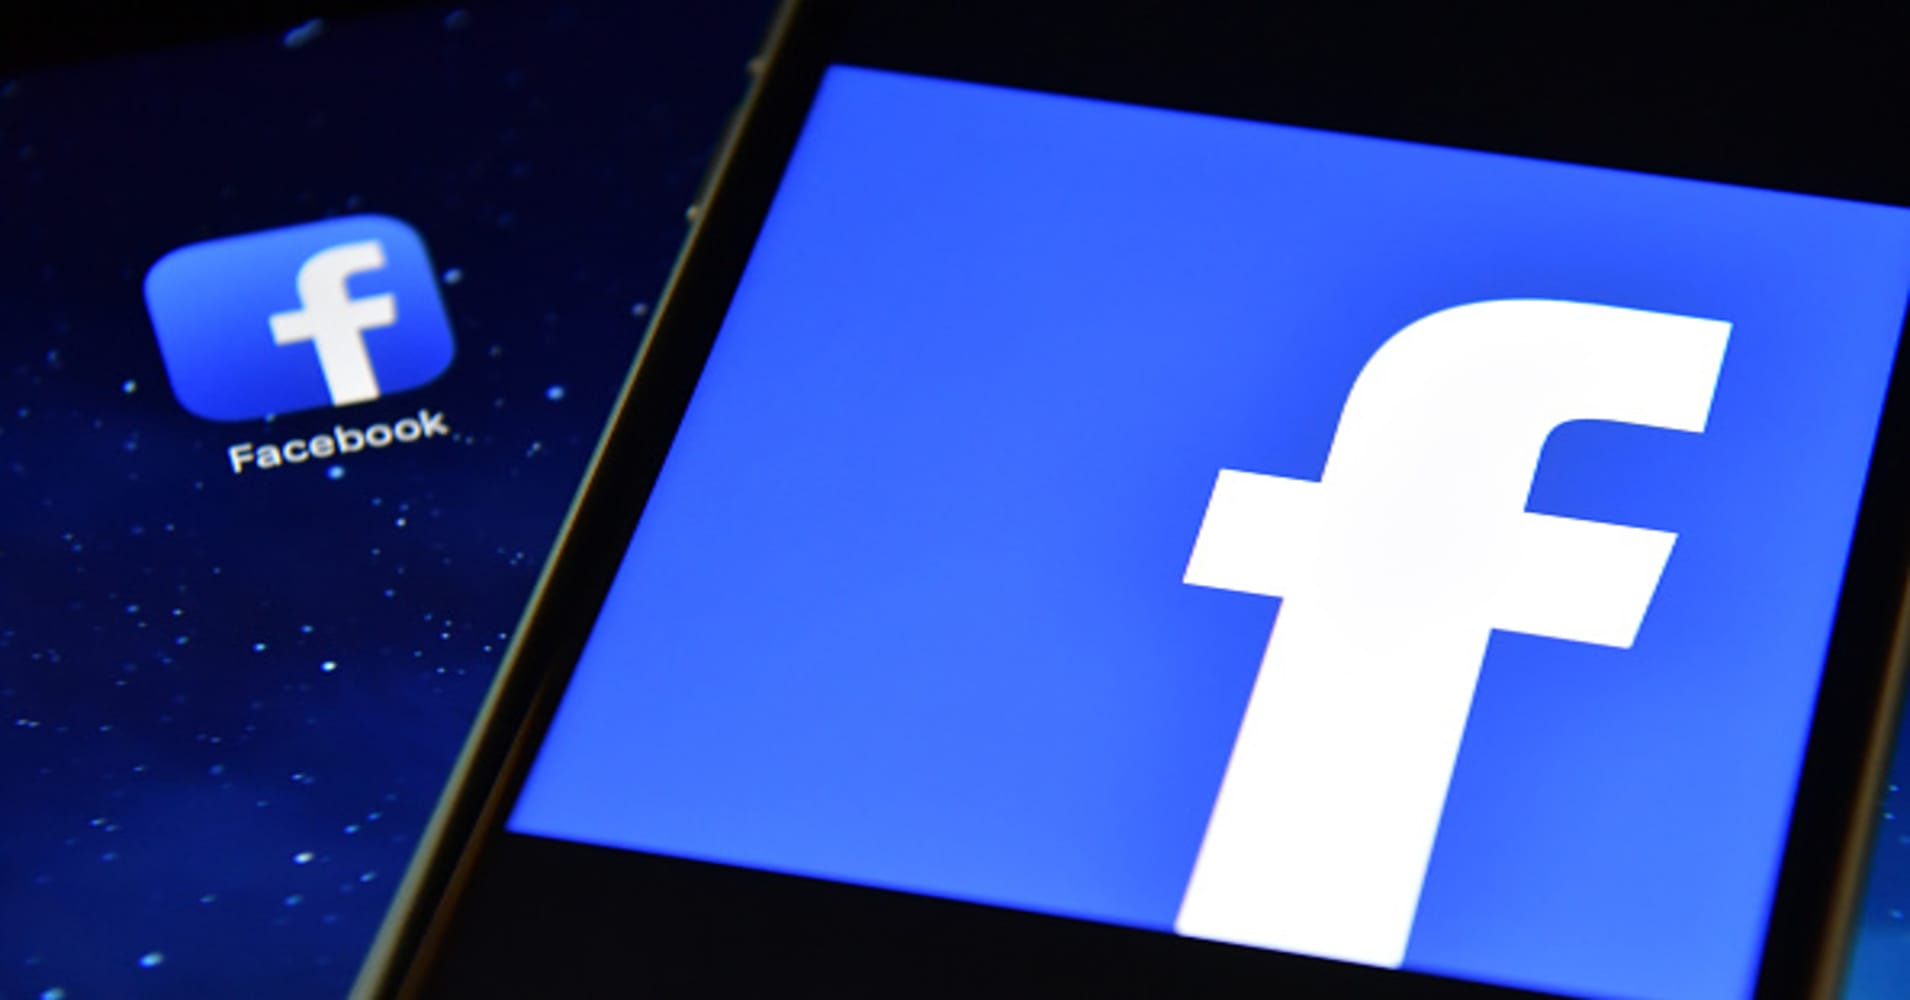 Investors are excited about innovation at Facebook, says analyst